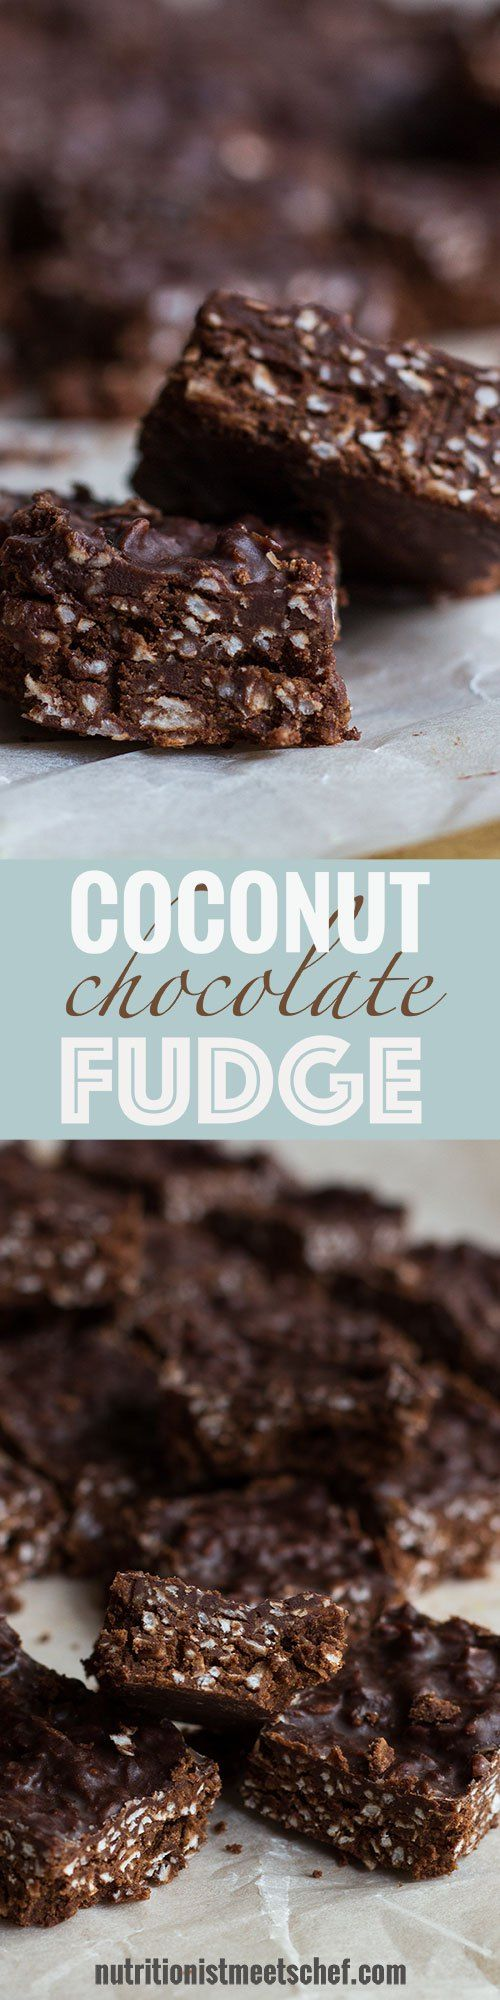 Coconut Chocolate Fudge! Gluten free, dairy free and can be vegan! Super easy to make and will please anyone who is a lover of chocolate and coconut!